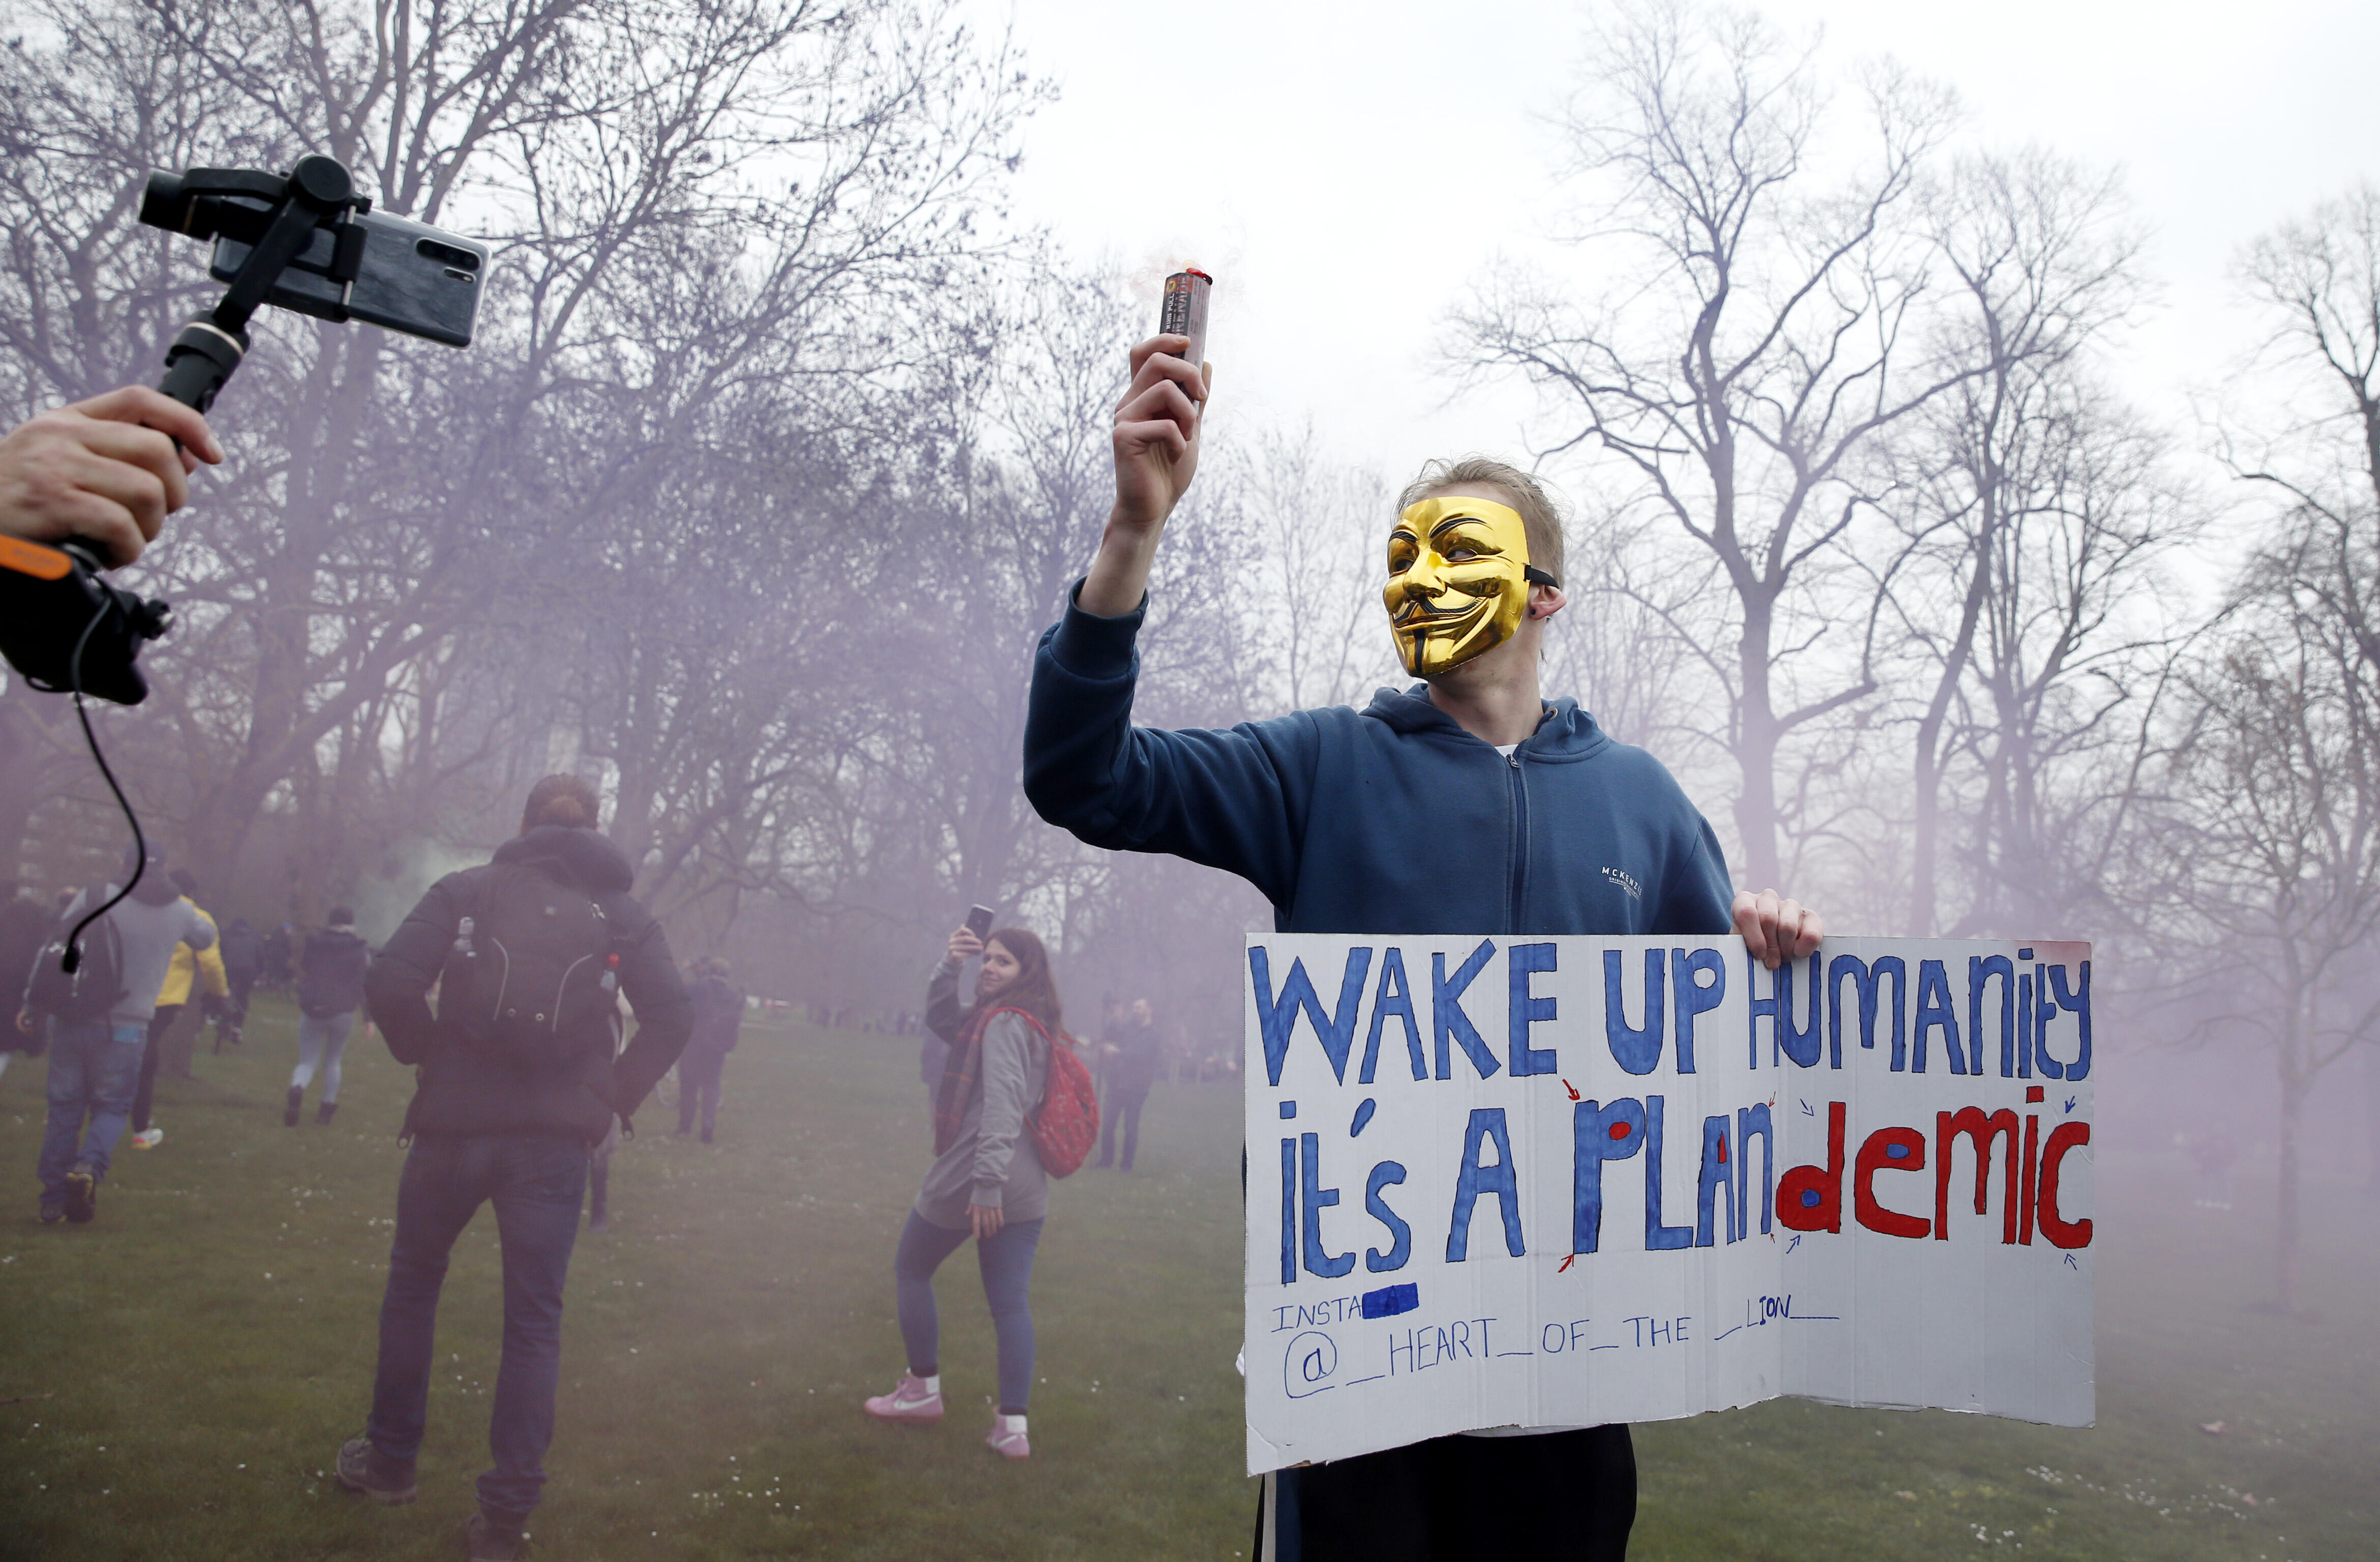 On March 20, a protester poses for a photo in London.